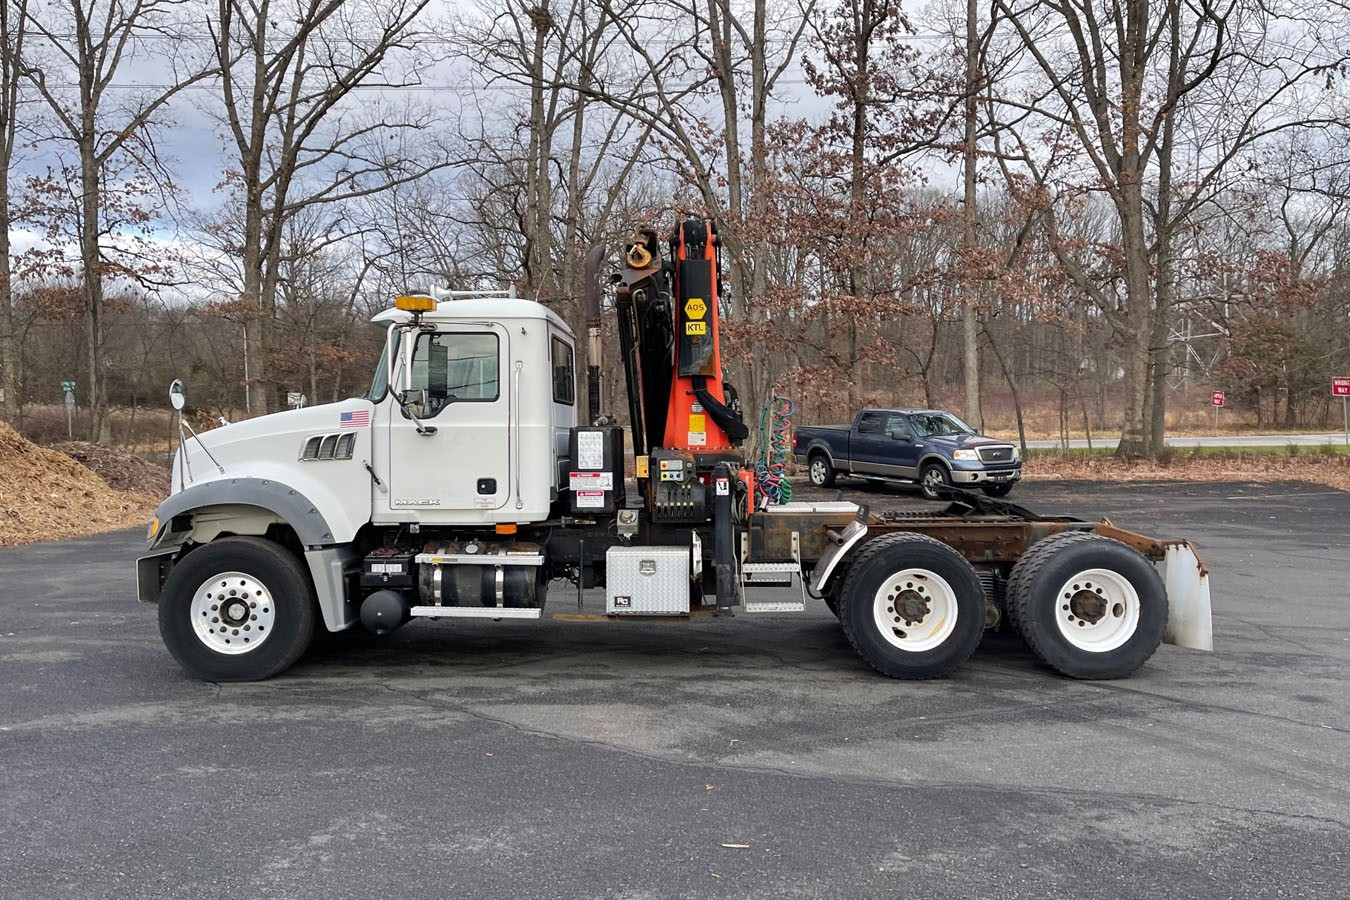 Used, 2008, Other, MACK CV713 TRACTOR W/ 2007 PALFINGER PK29002: 8.5 TON KNUCKLEBOOM TRUCK, Other